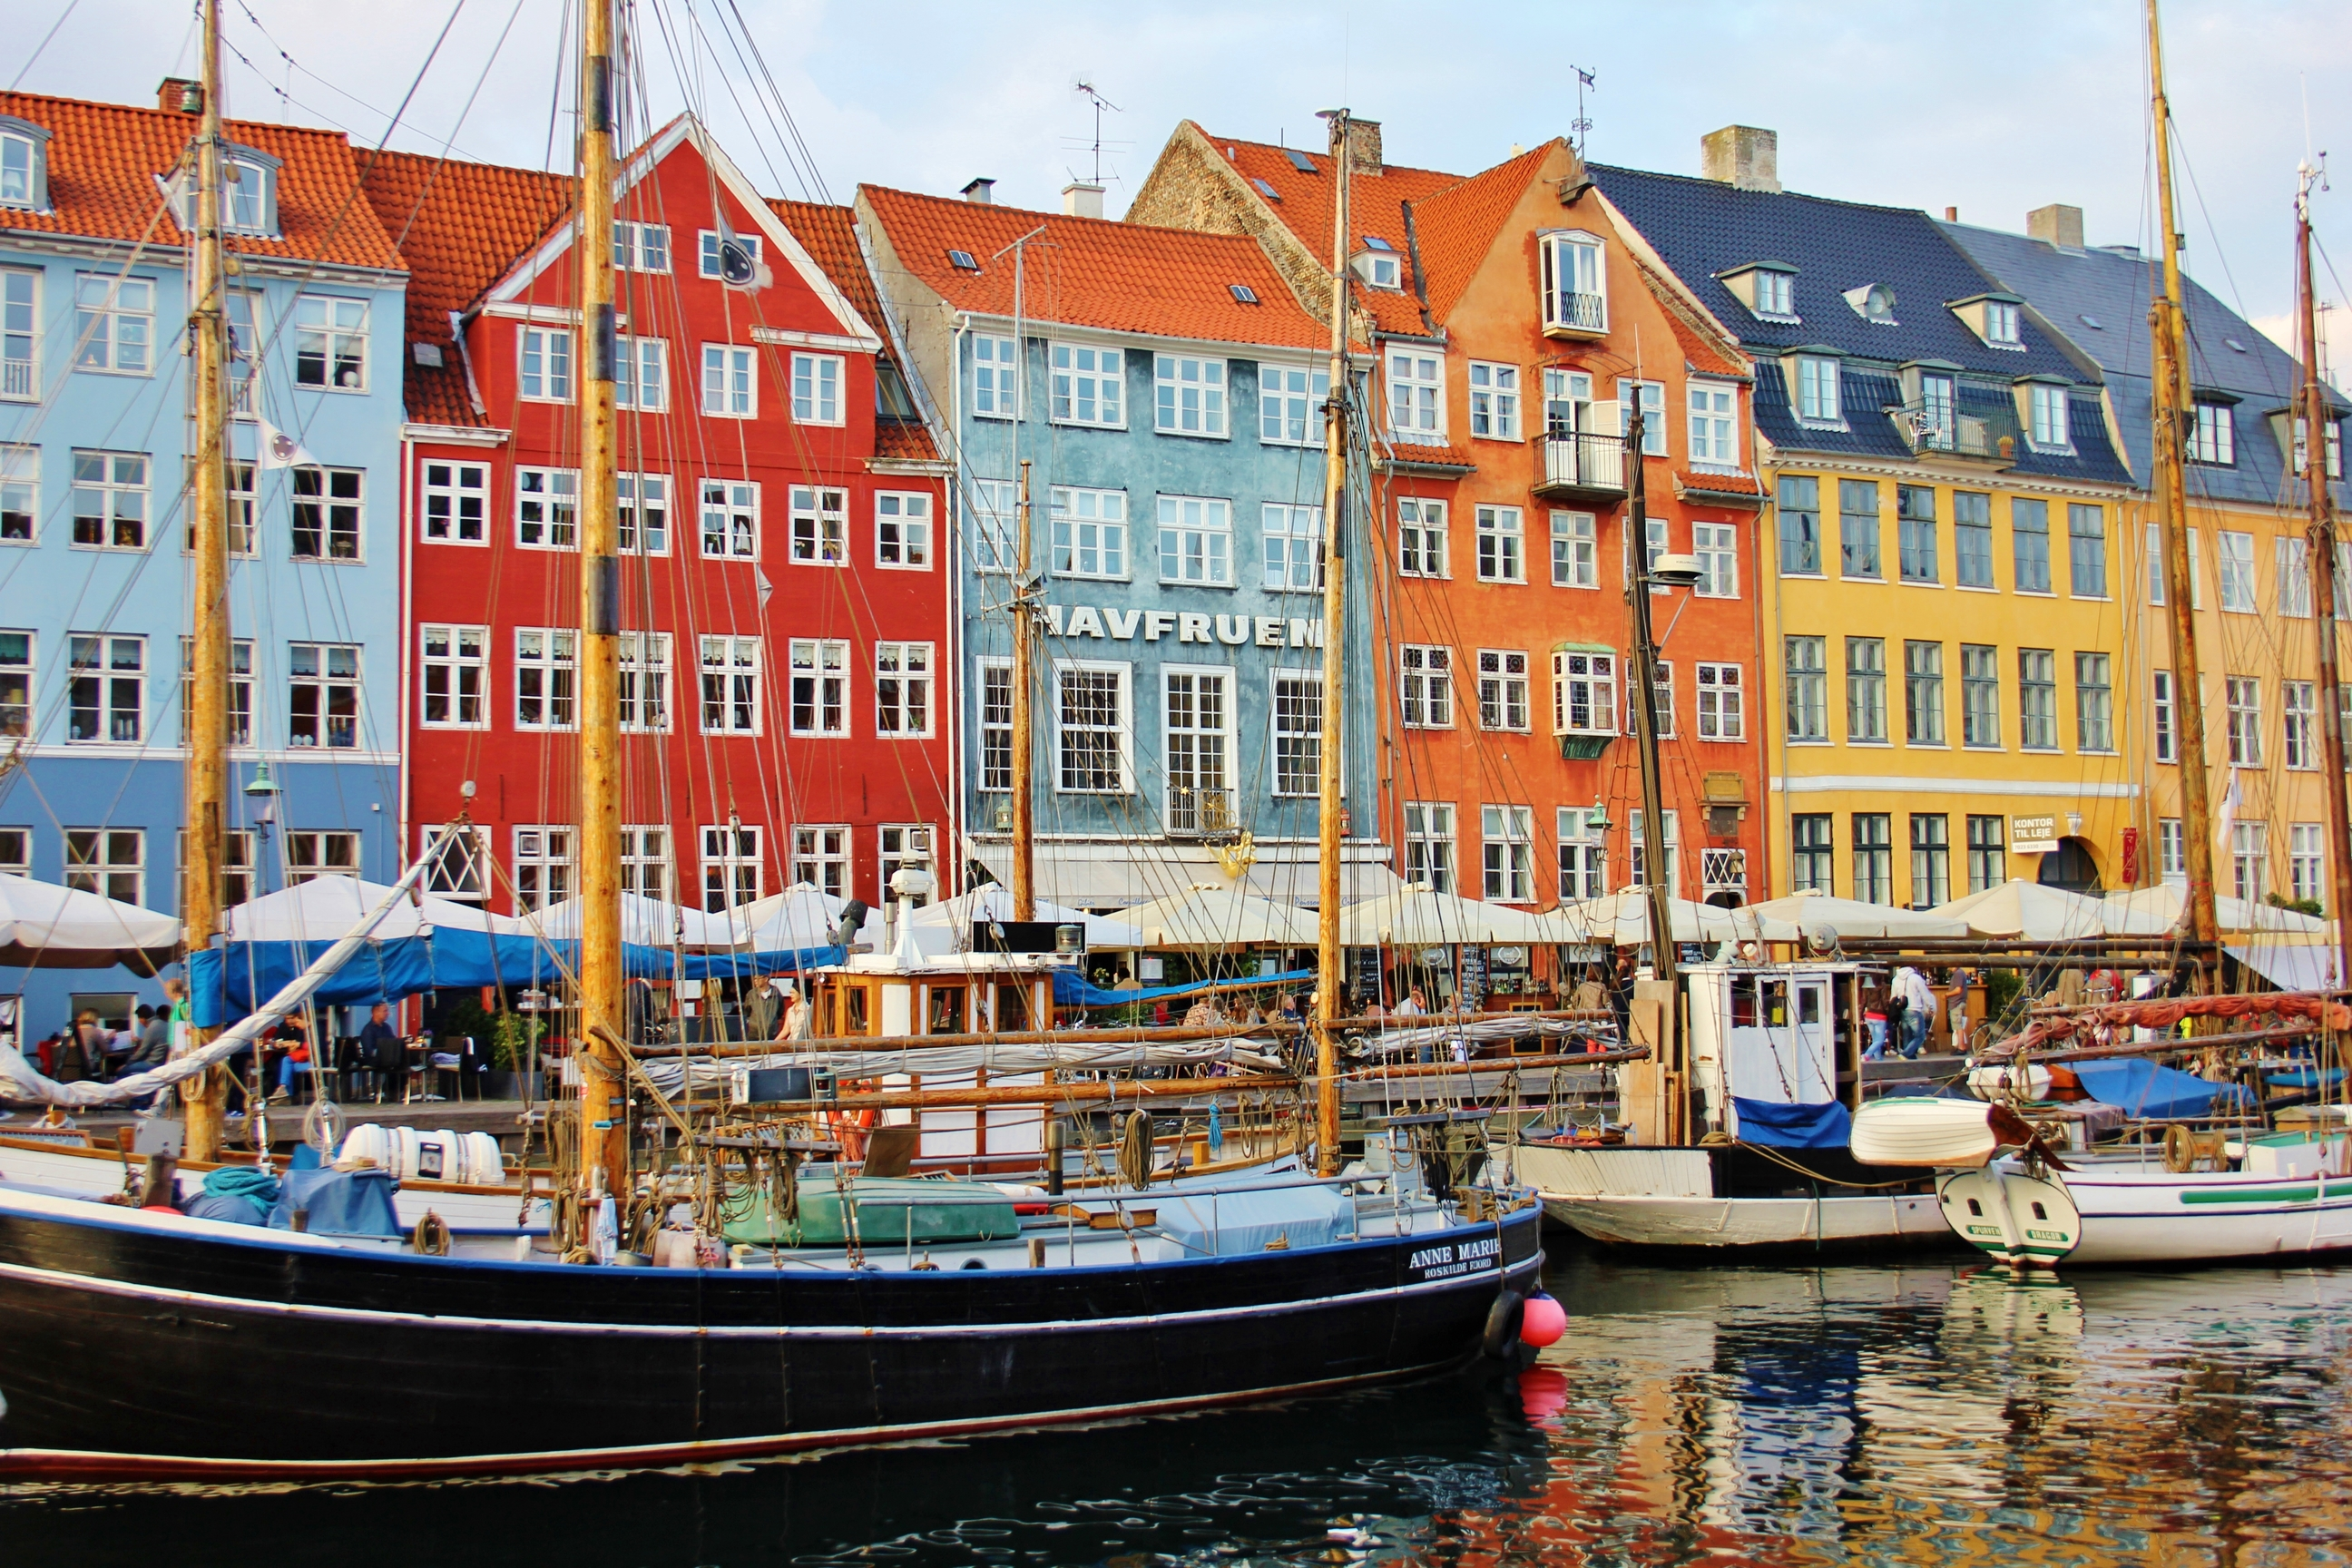 Nyhaven, old harbour in Copenhagen